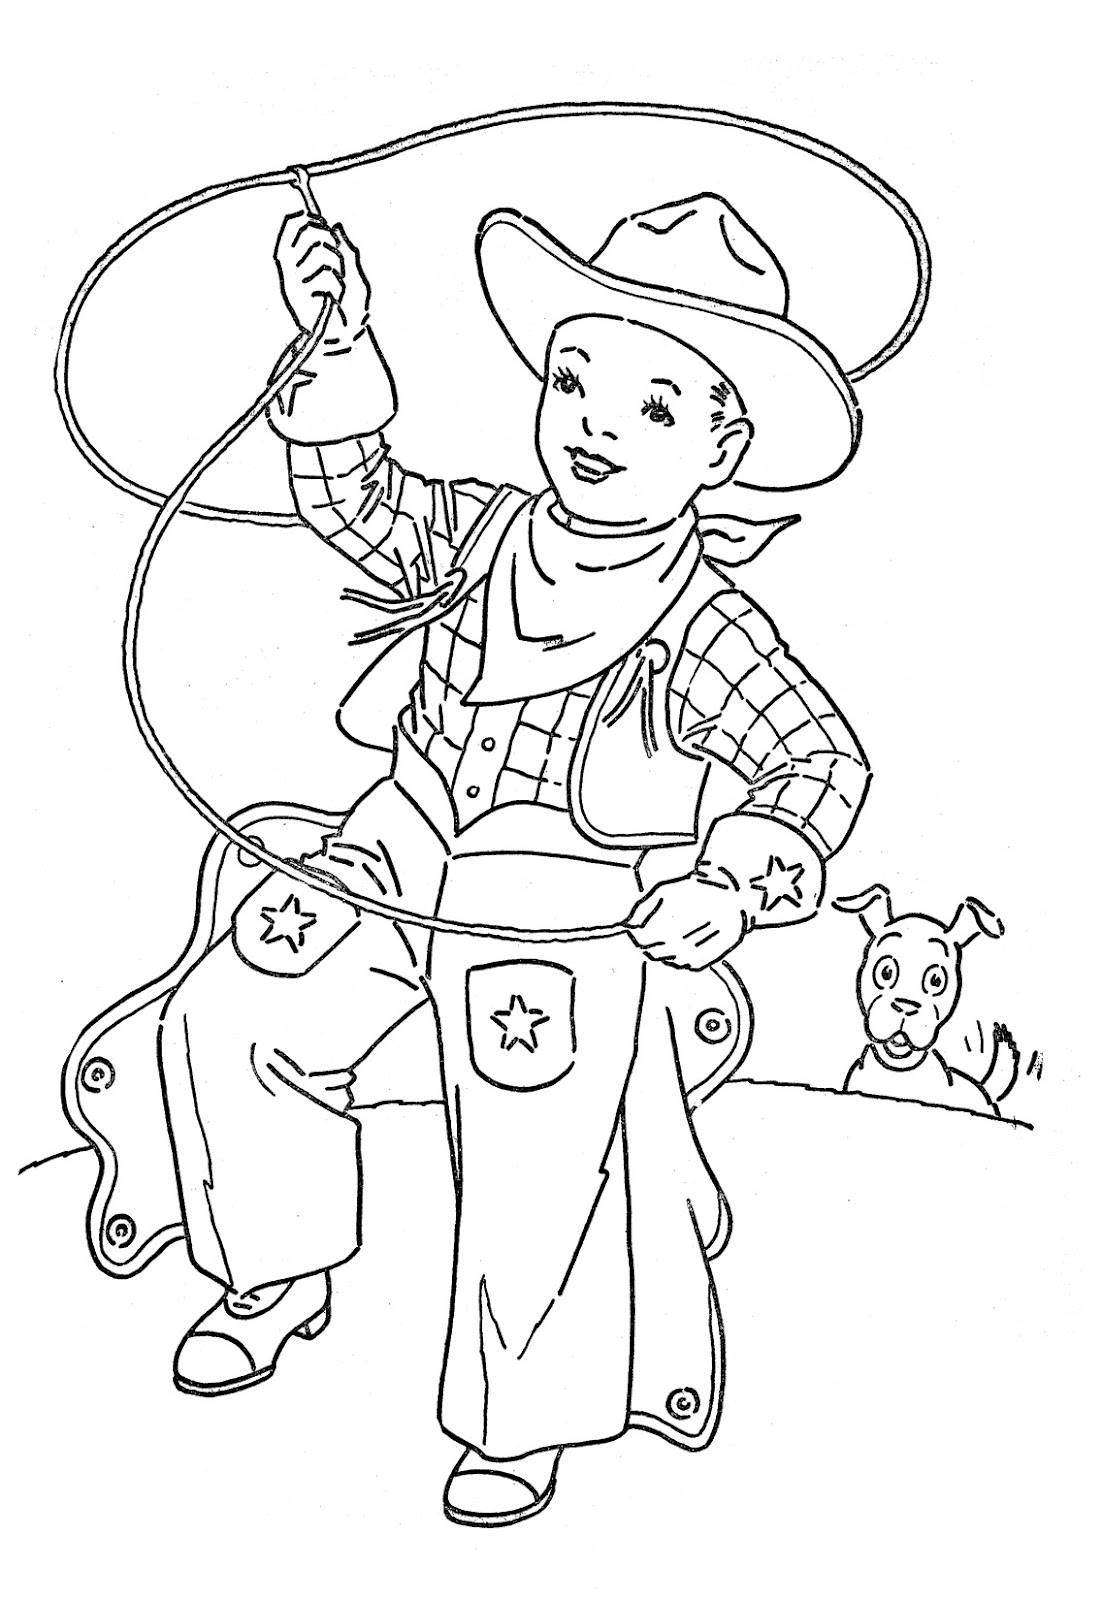 printable cowboy coloring pages me - Color Pages For Kids